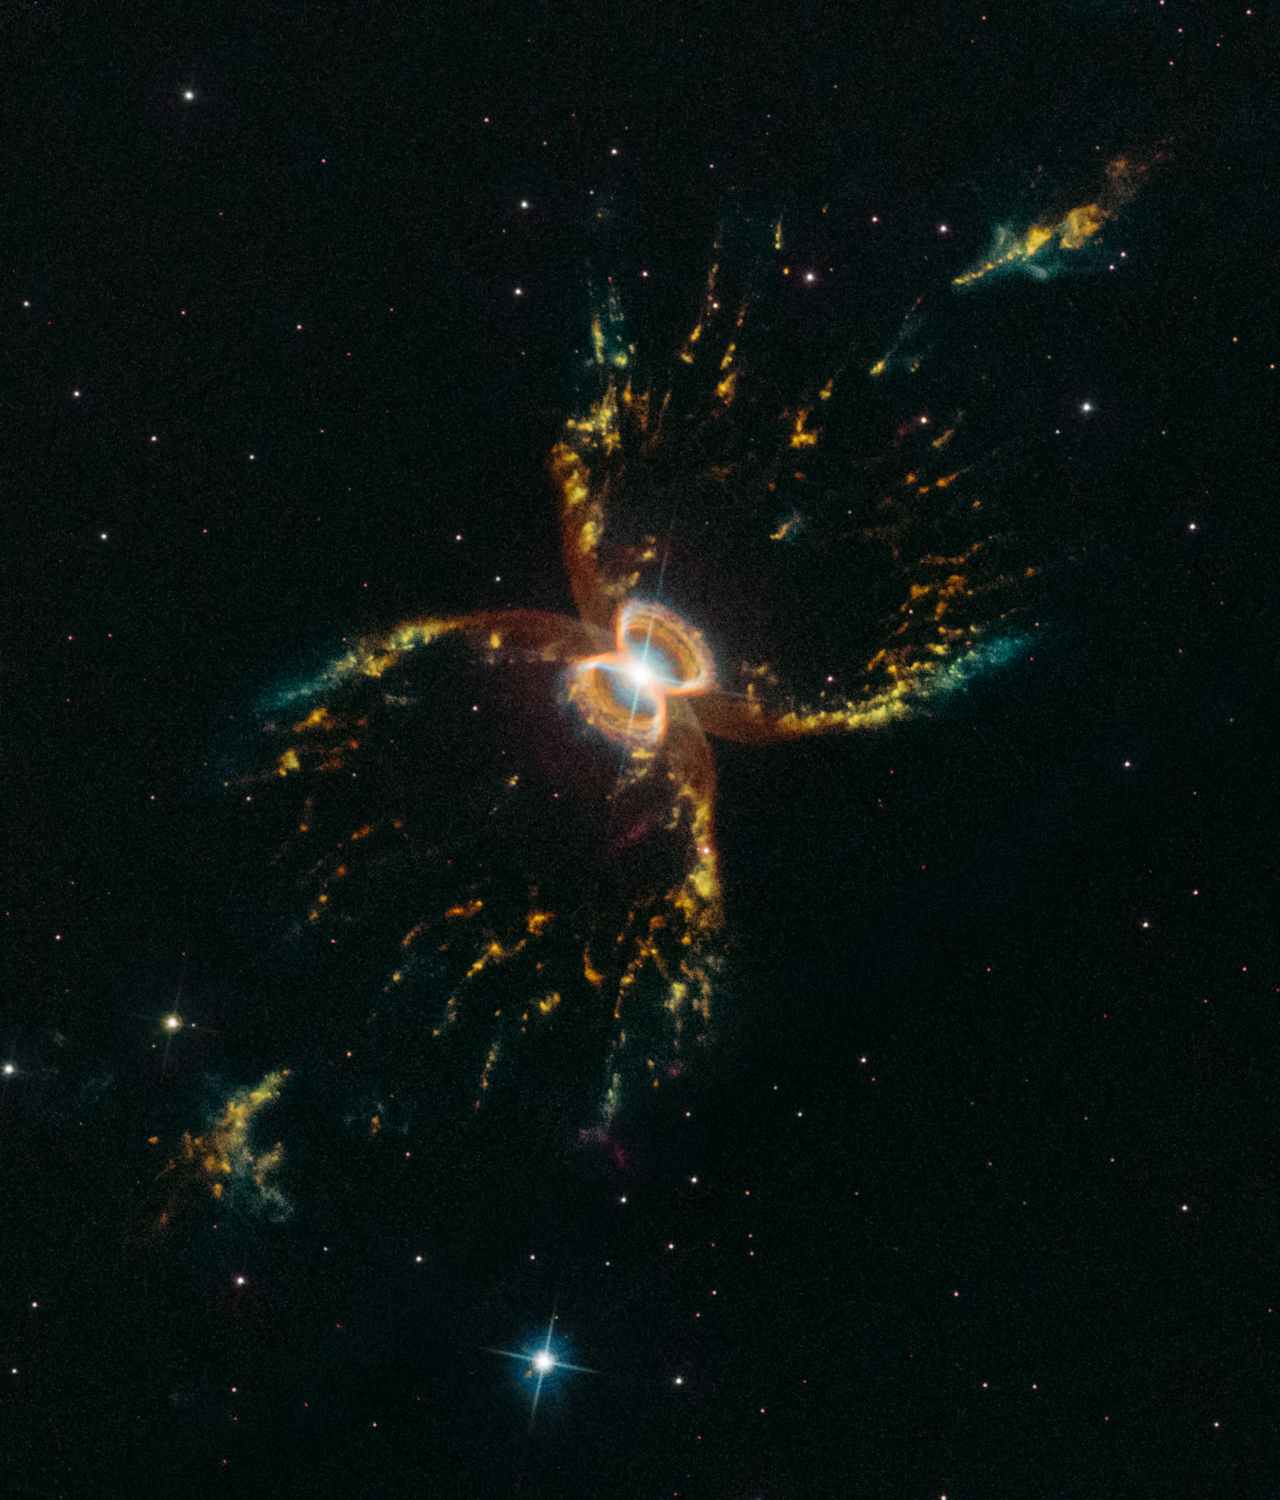 NASA's Hubble takes beautiful image of Southern Crab nebula to celebrate turning 29- Technology News, Firstpost